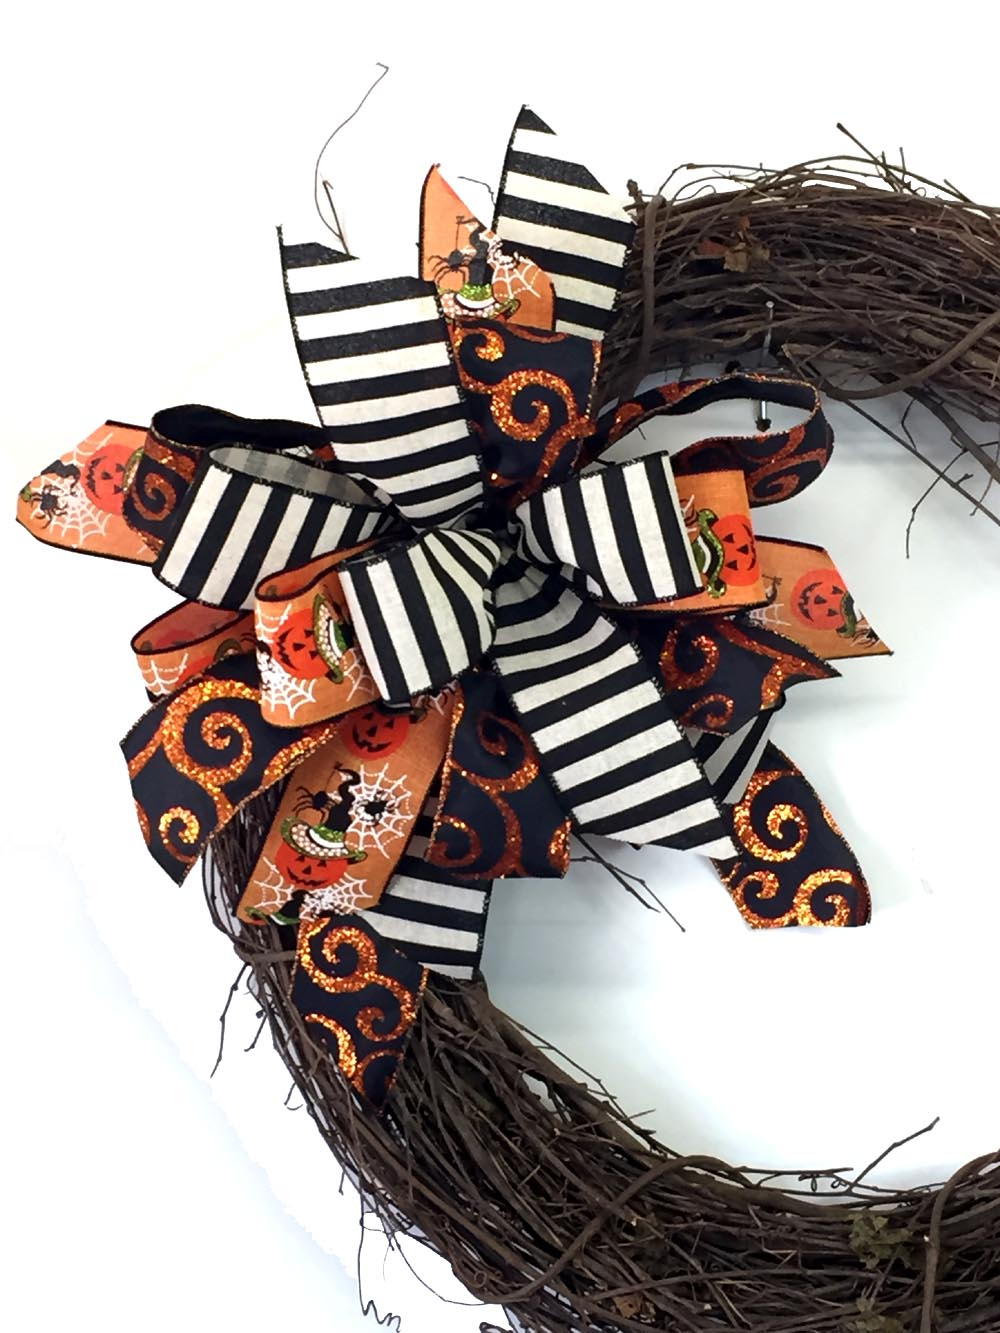 ribbon, terri bow, scrap ribbon, pro bow, bow maker, bowmaker, make a bow